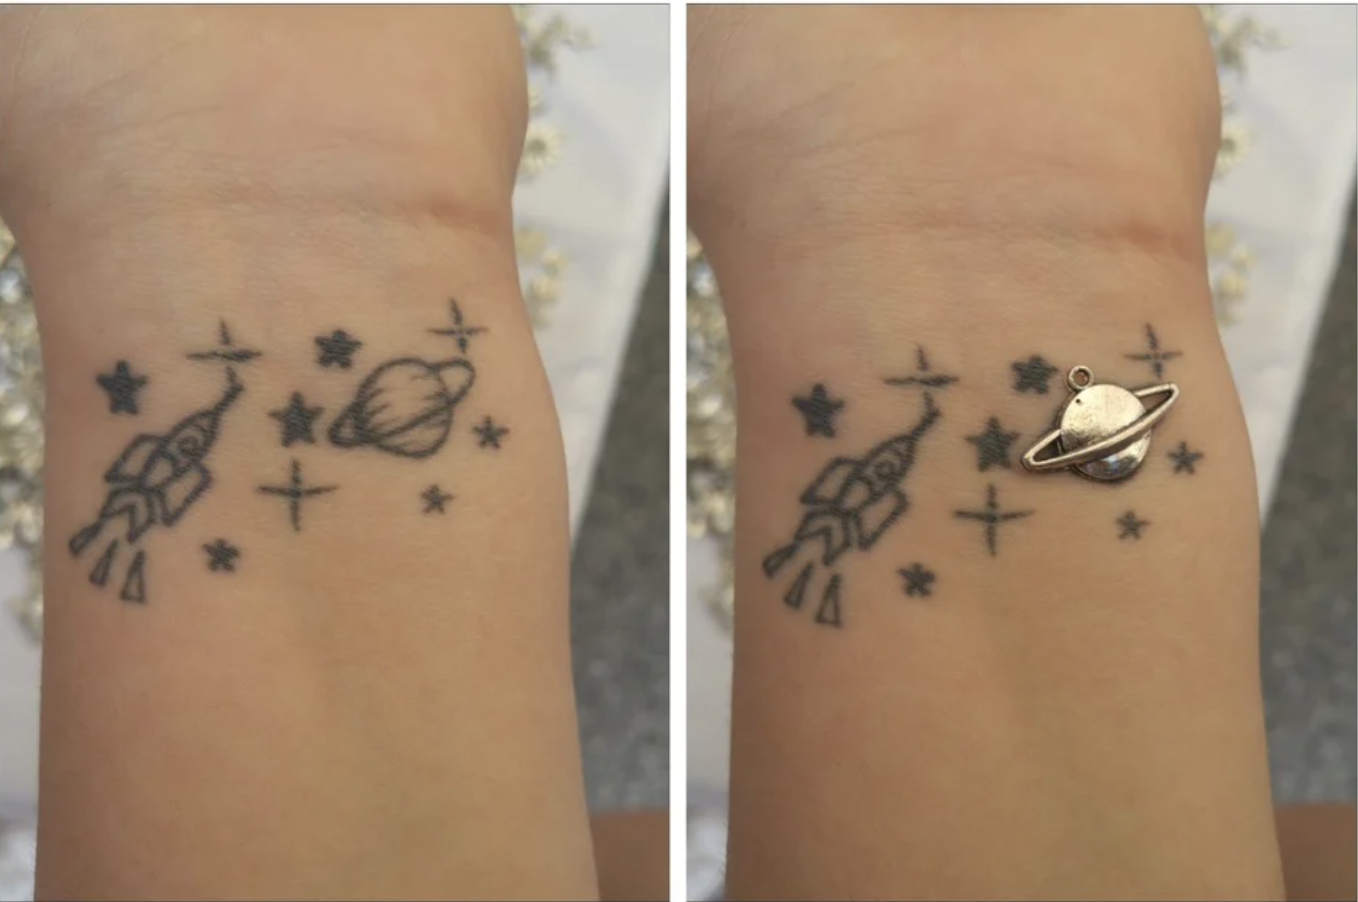 A planet charm matches a woman's planet tattoo